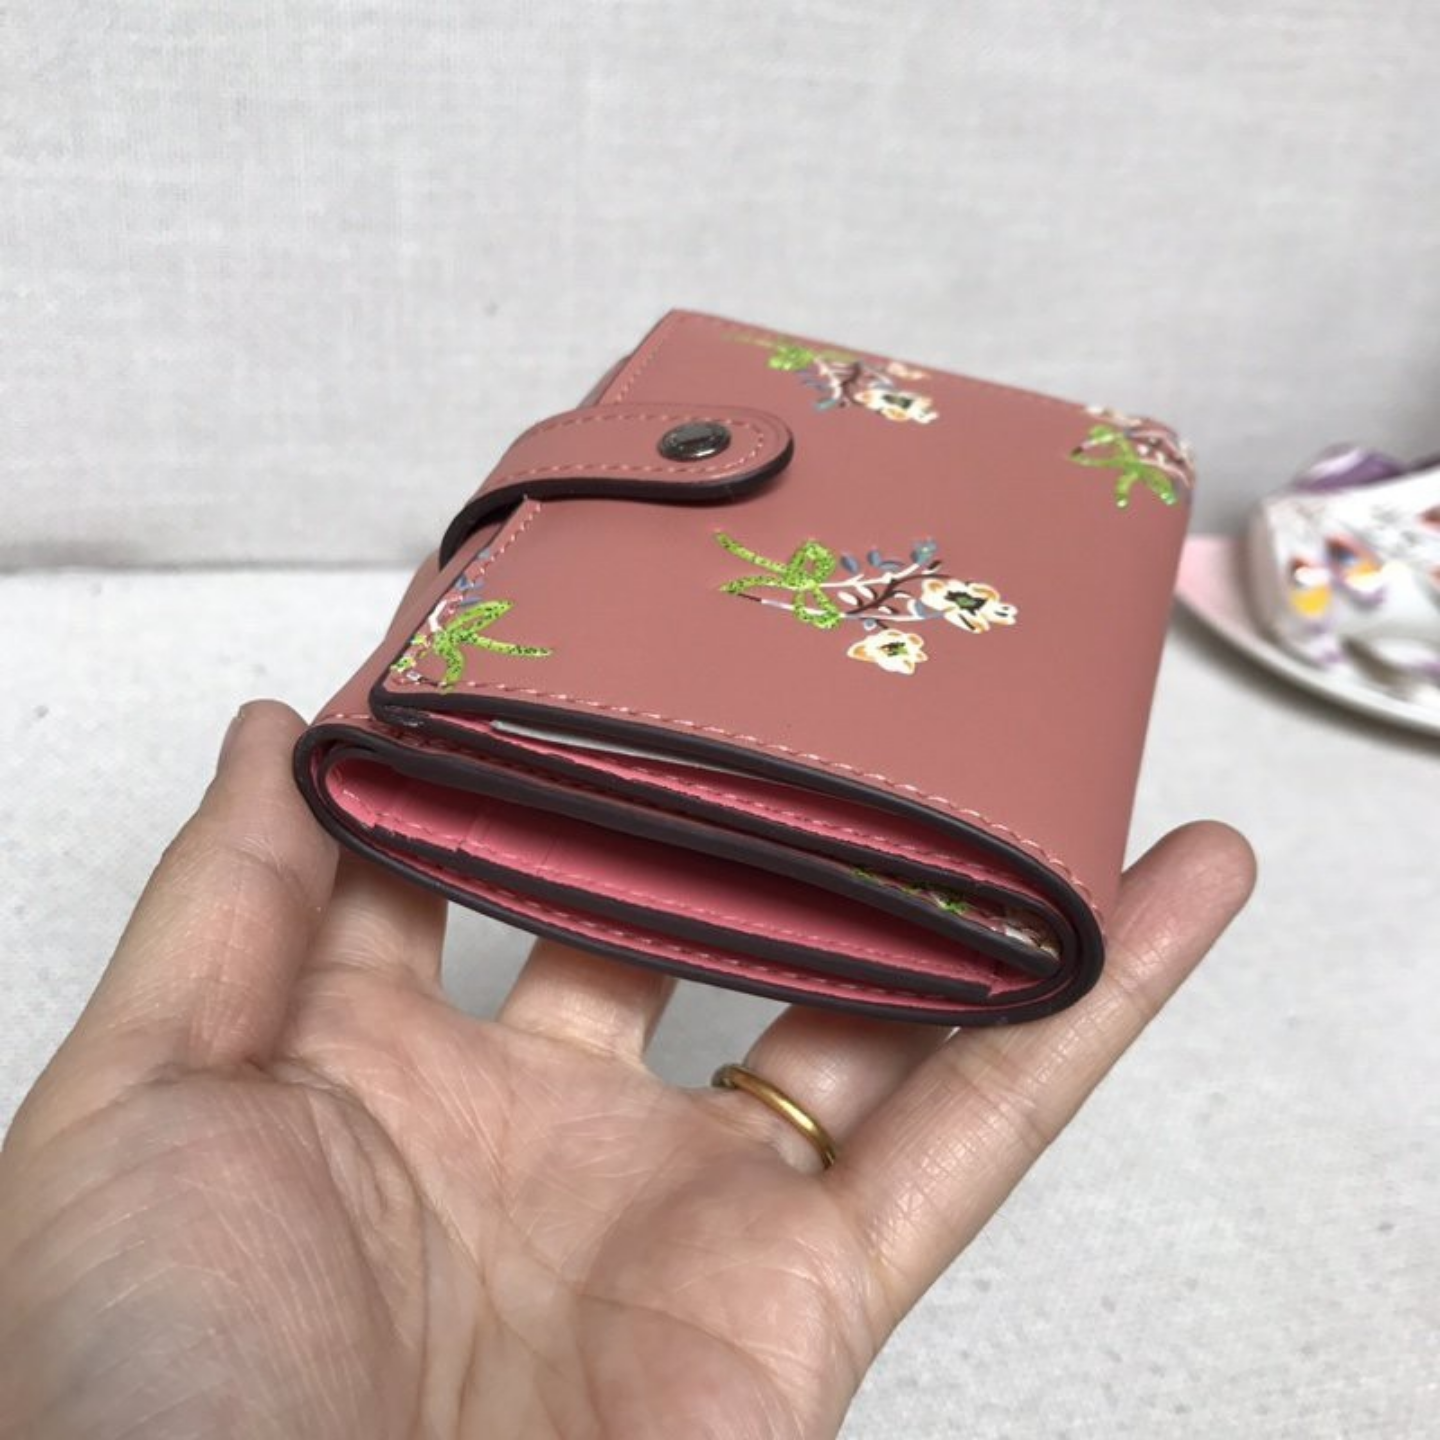 (SG COD)  Women's Bags coach Wallets F21783 Tri-fold snap wallet Wallets and Cardholders Short Wallets